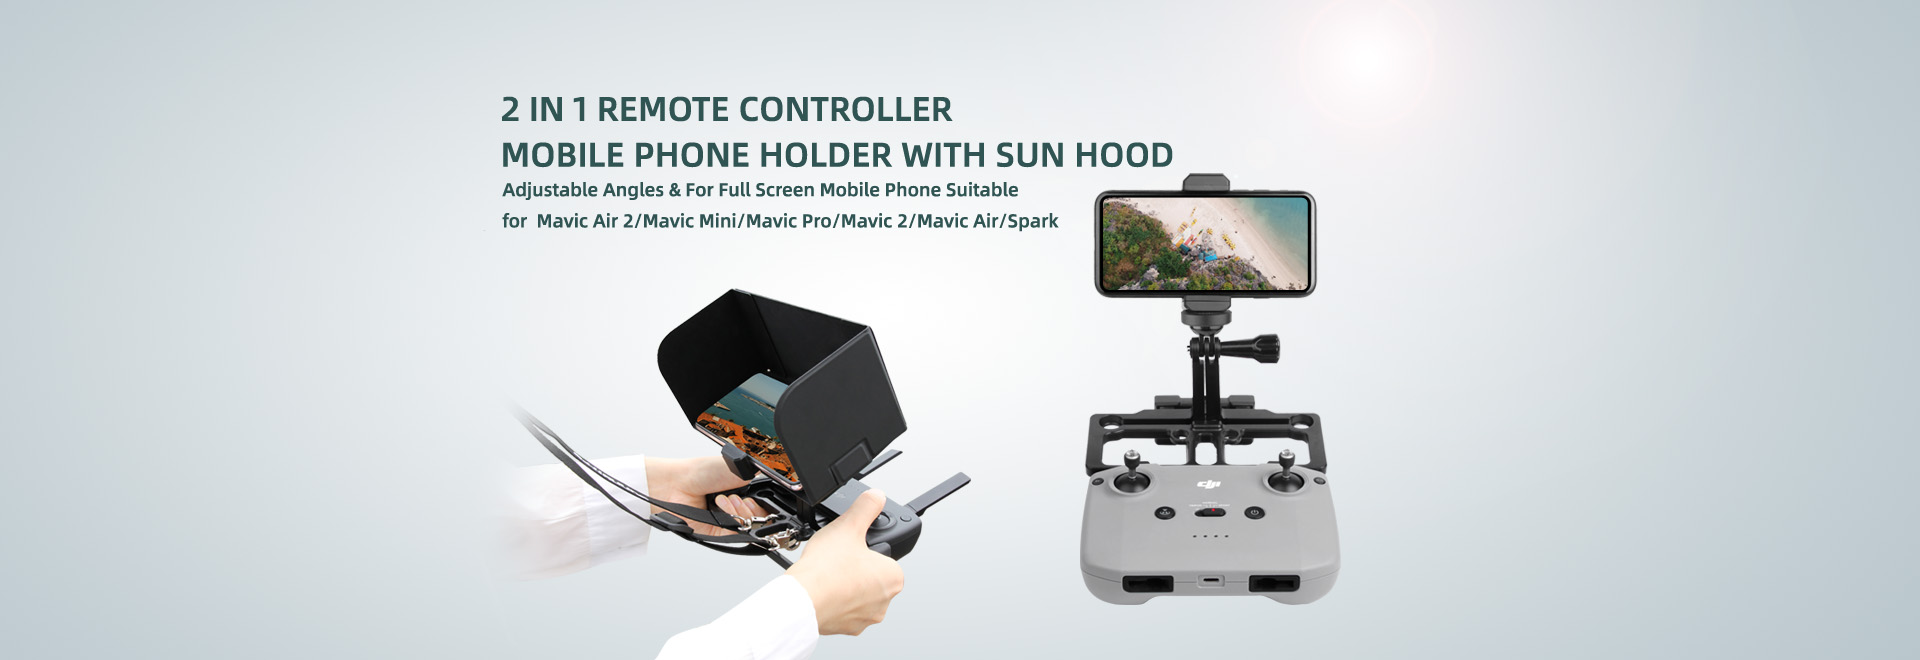 Mobile Phone Holder with Sun Hood